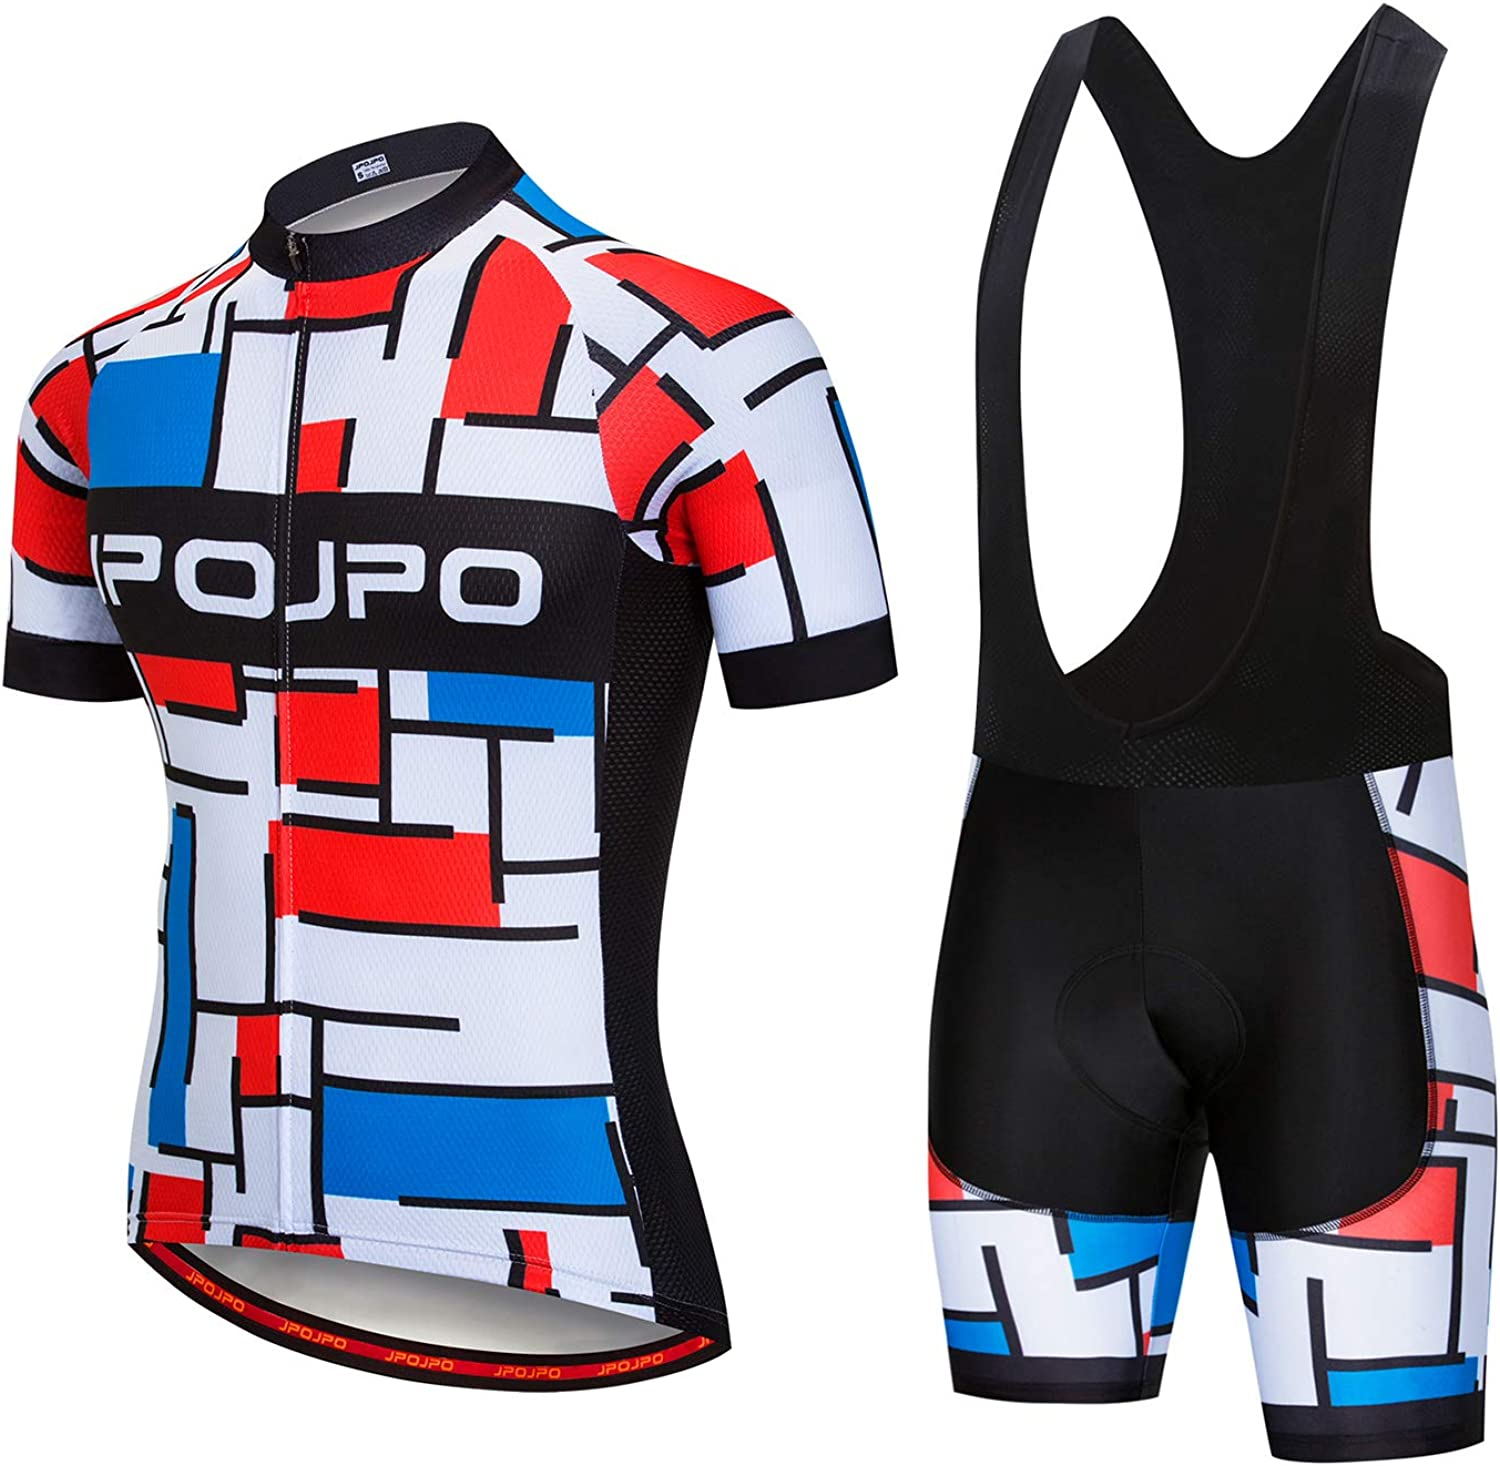 Mens Cycling Jersey,Bike Short Sleeve,Breathable Bicycle Clothing Comfortable Quick Dry